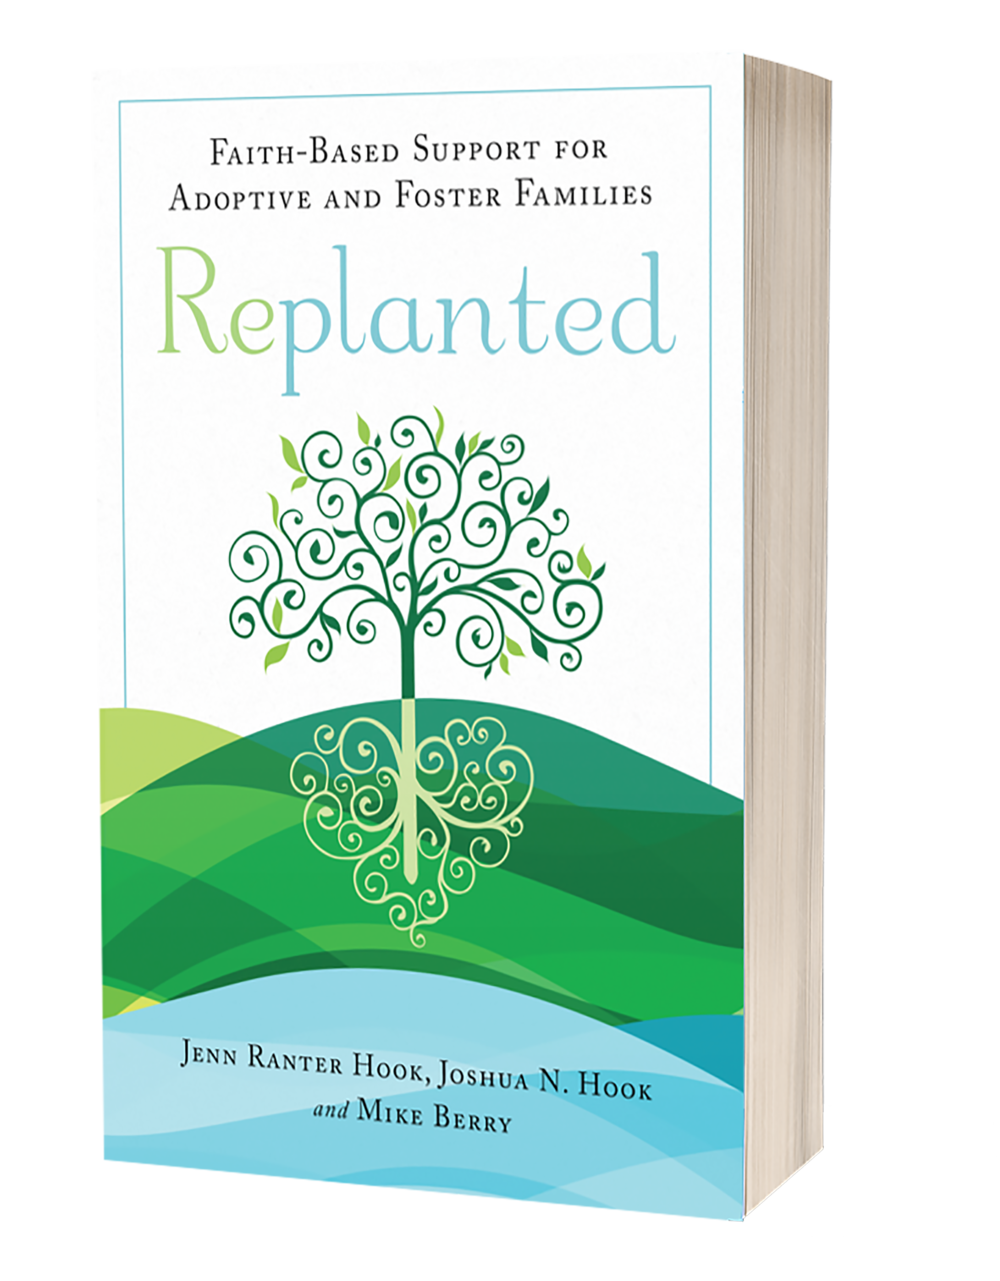 Replanted: Faith-Based Support for Adoptive and Foster Familiesby Jenn Ranter Hook, Joshua N. Hook, Mike Berry - Many people embark on the journey of adoption and foster care but are unprepared for the challenges that await them along the way. Replanted takes an honest look at the joys and hardships that come with choosing this journey and provides a model of faith-based support made up of three parts to help families thrive: Soil, Sunlight, and Water.